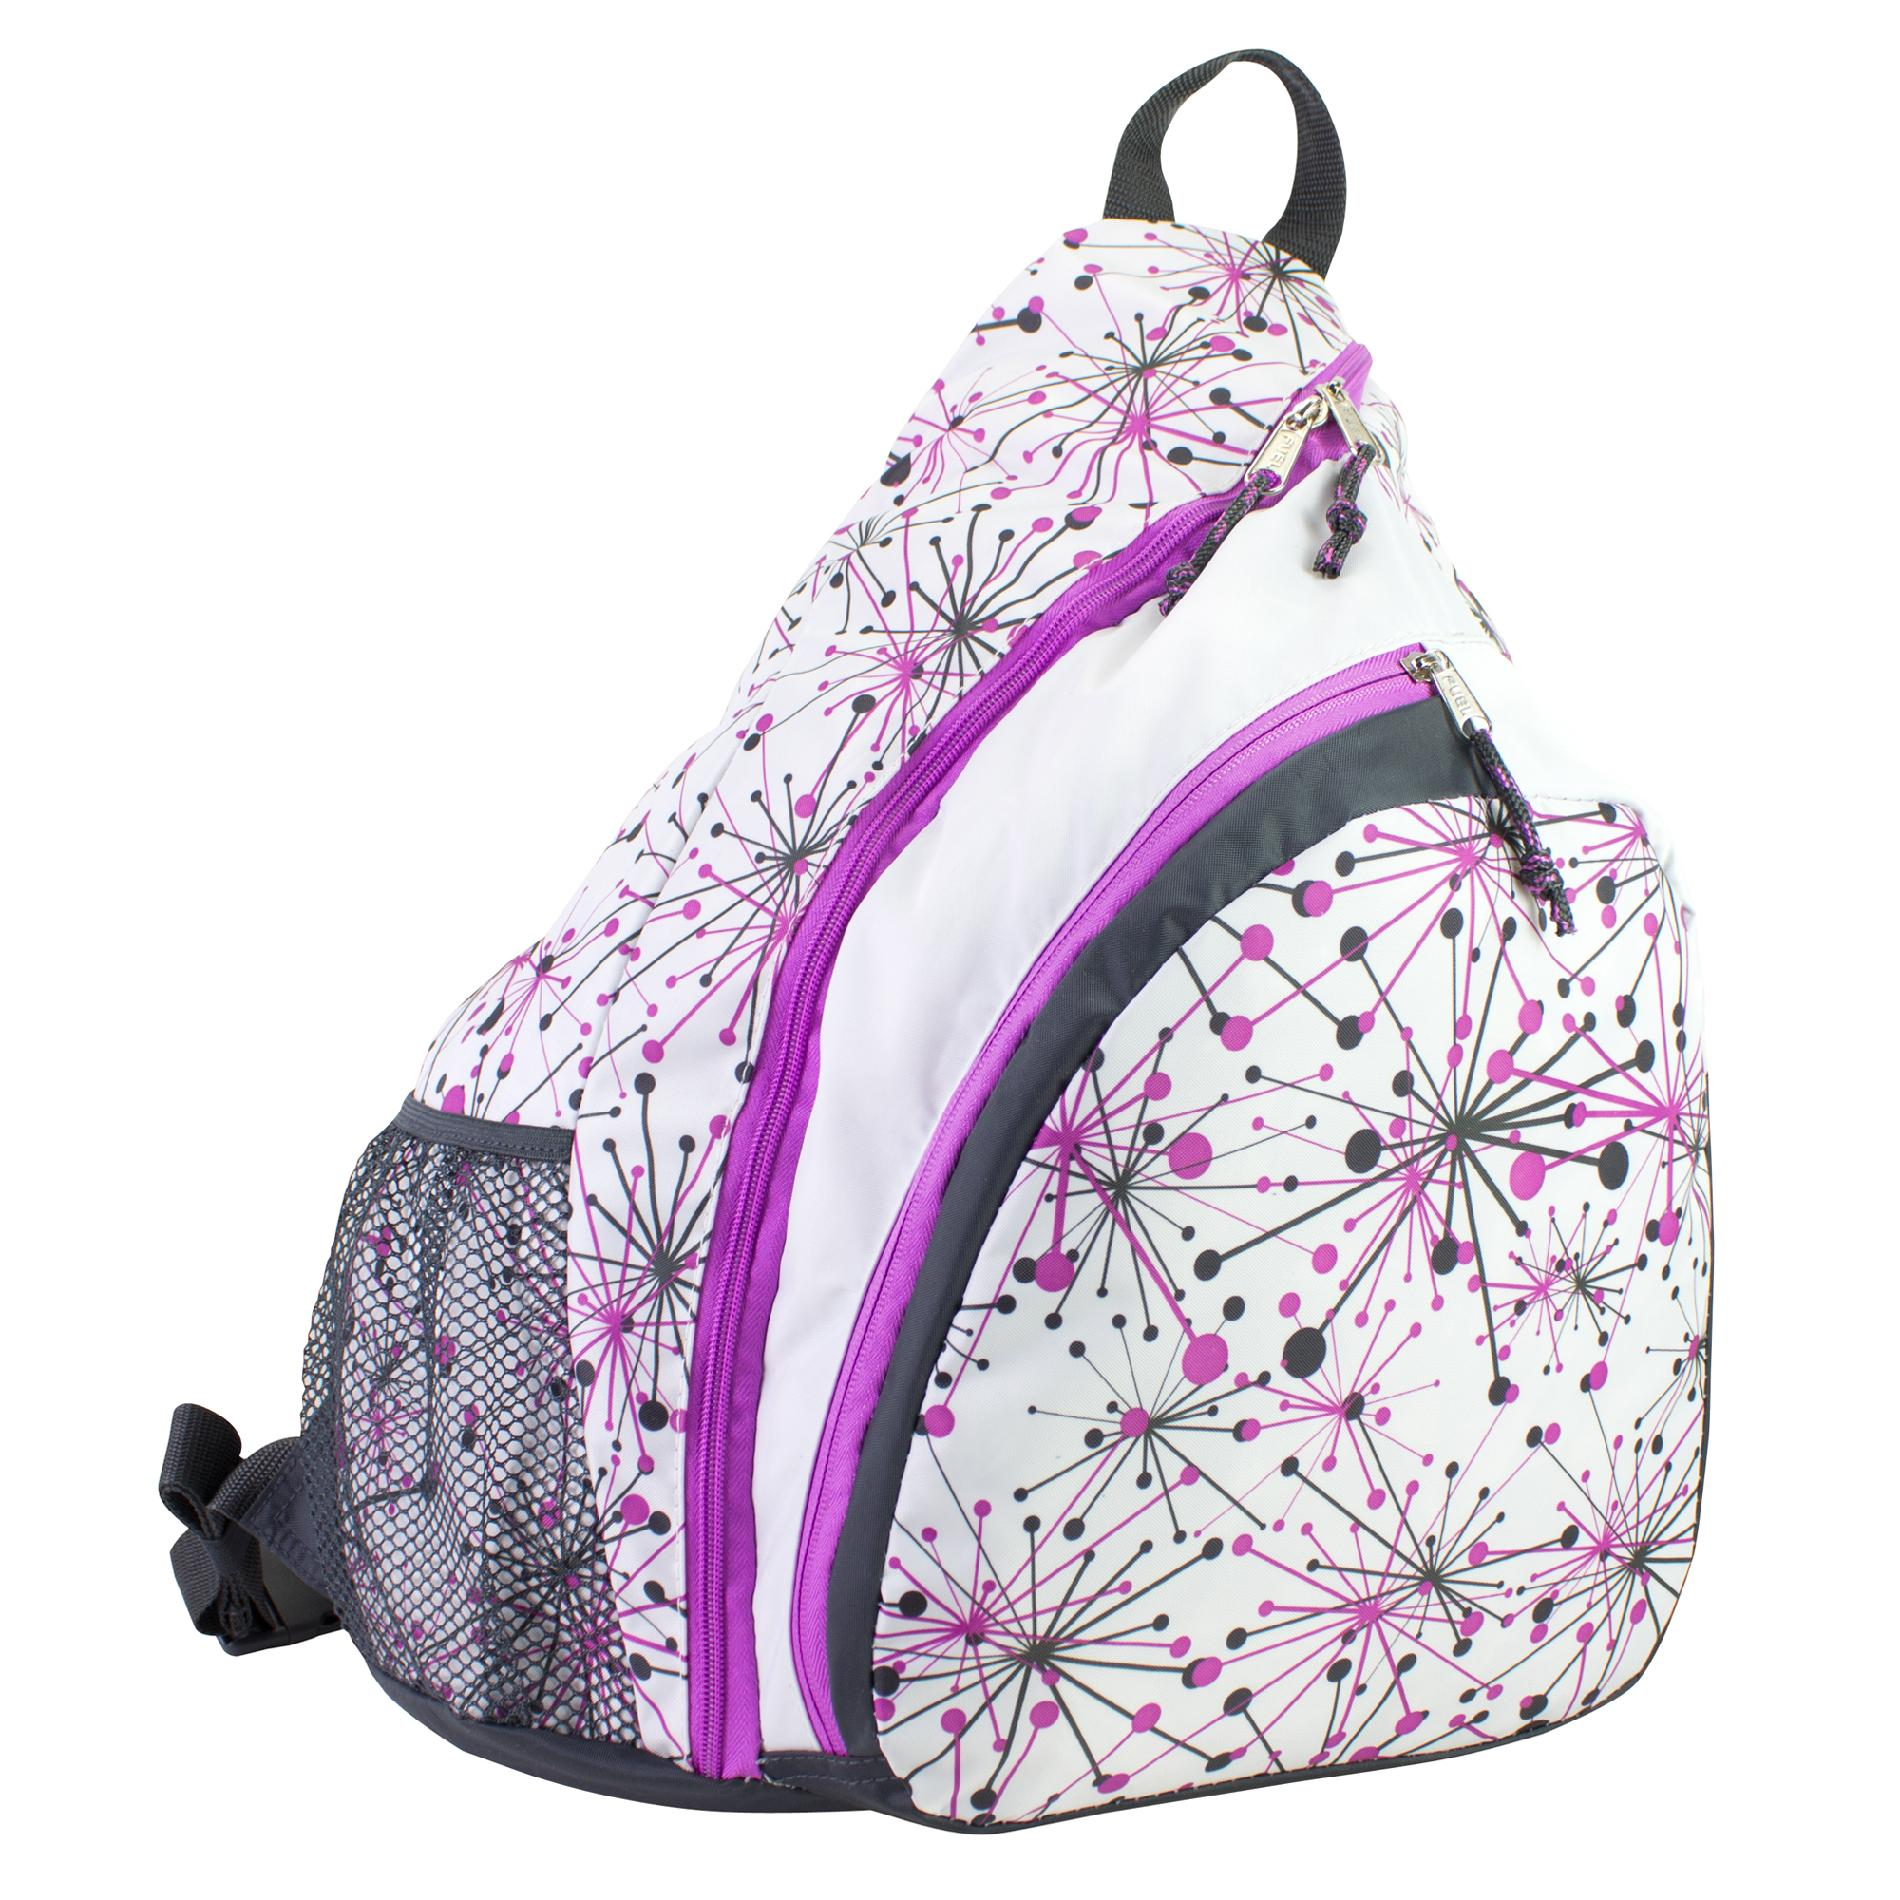 a2a3c77fa4 One Strap Backpacks For Girls - Backpakc Fam